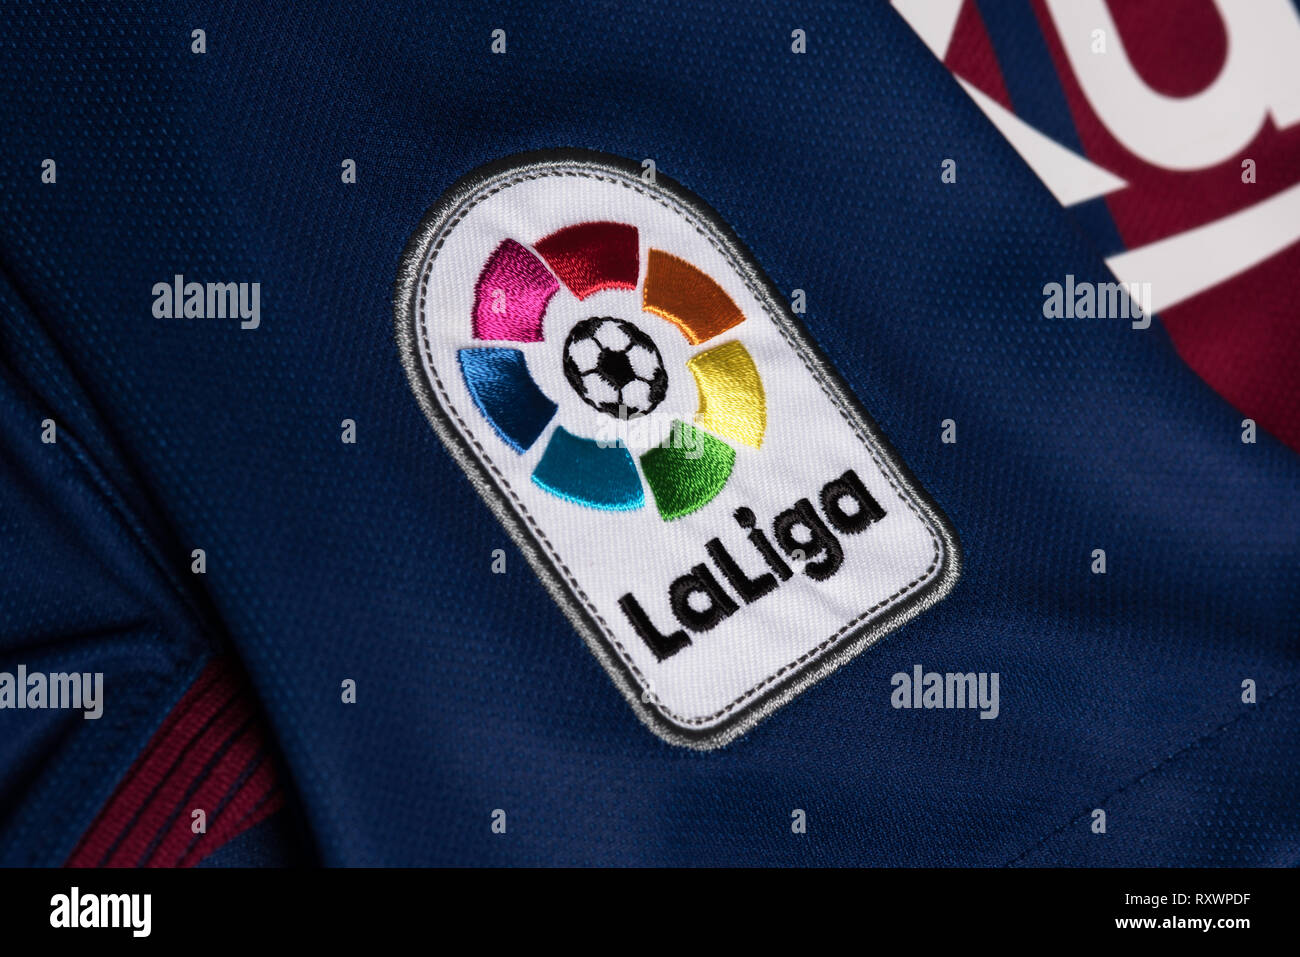 Close up of La Liga badge on an FC Barcelona jersey. - Stock Image